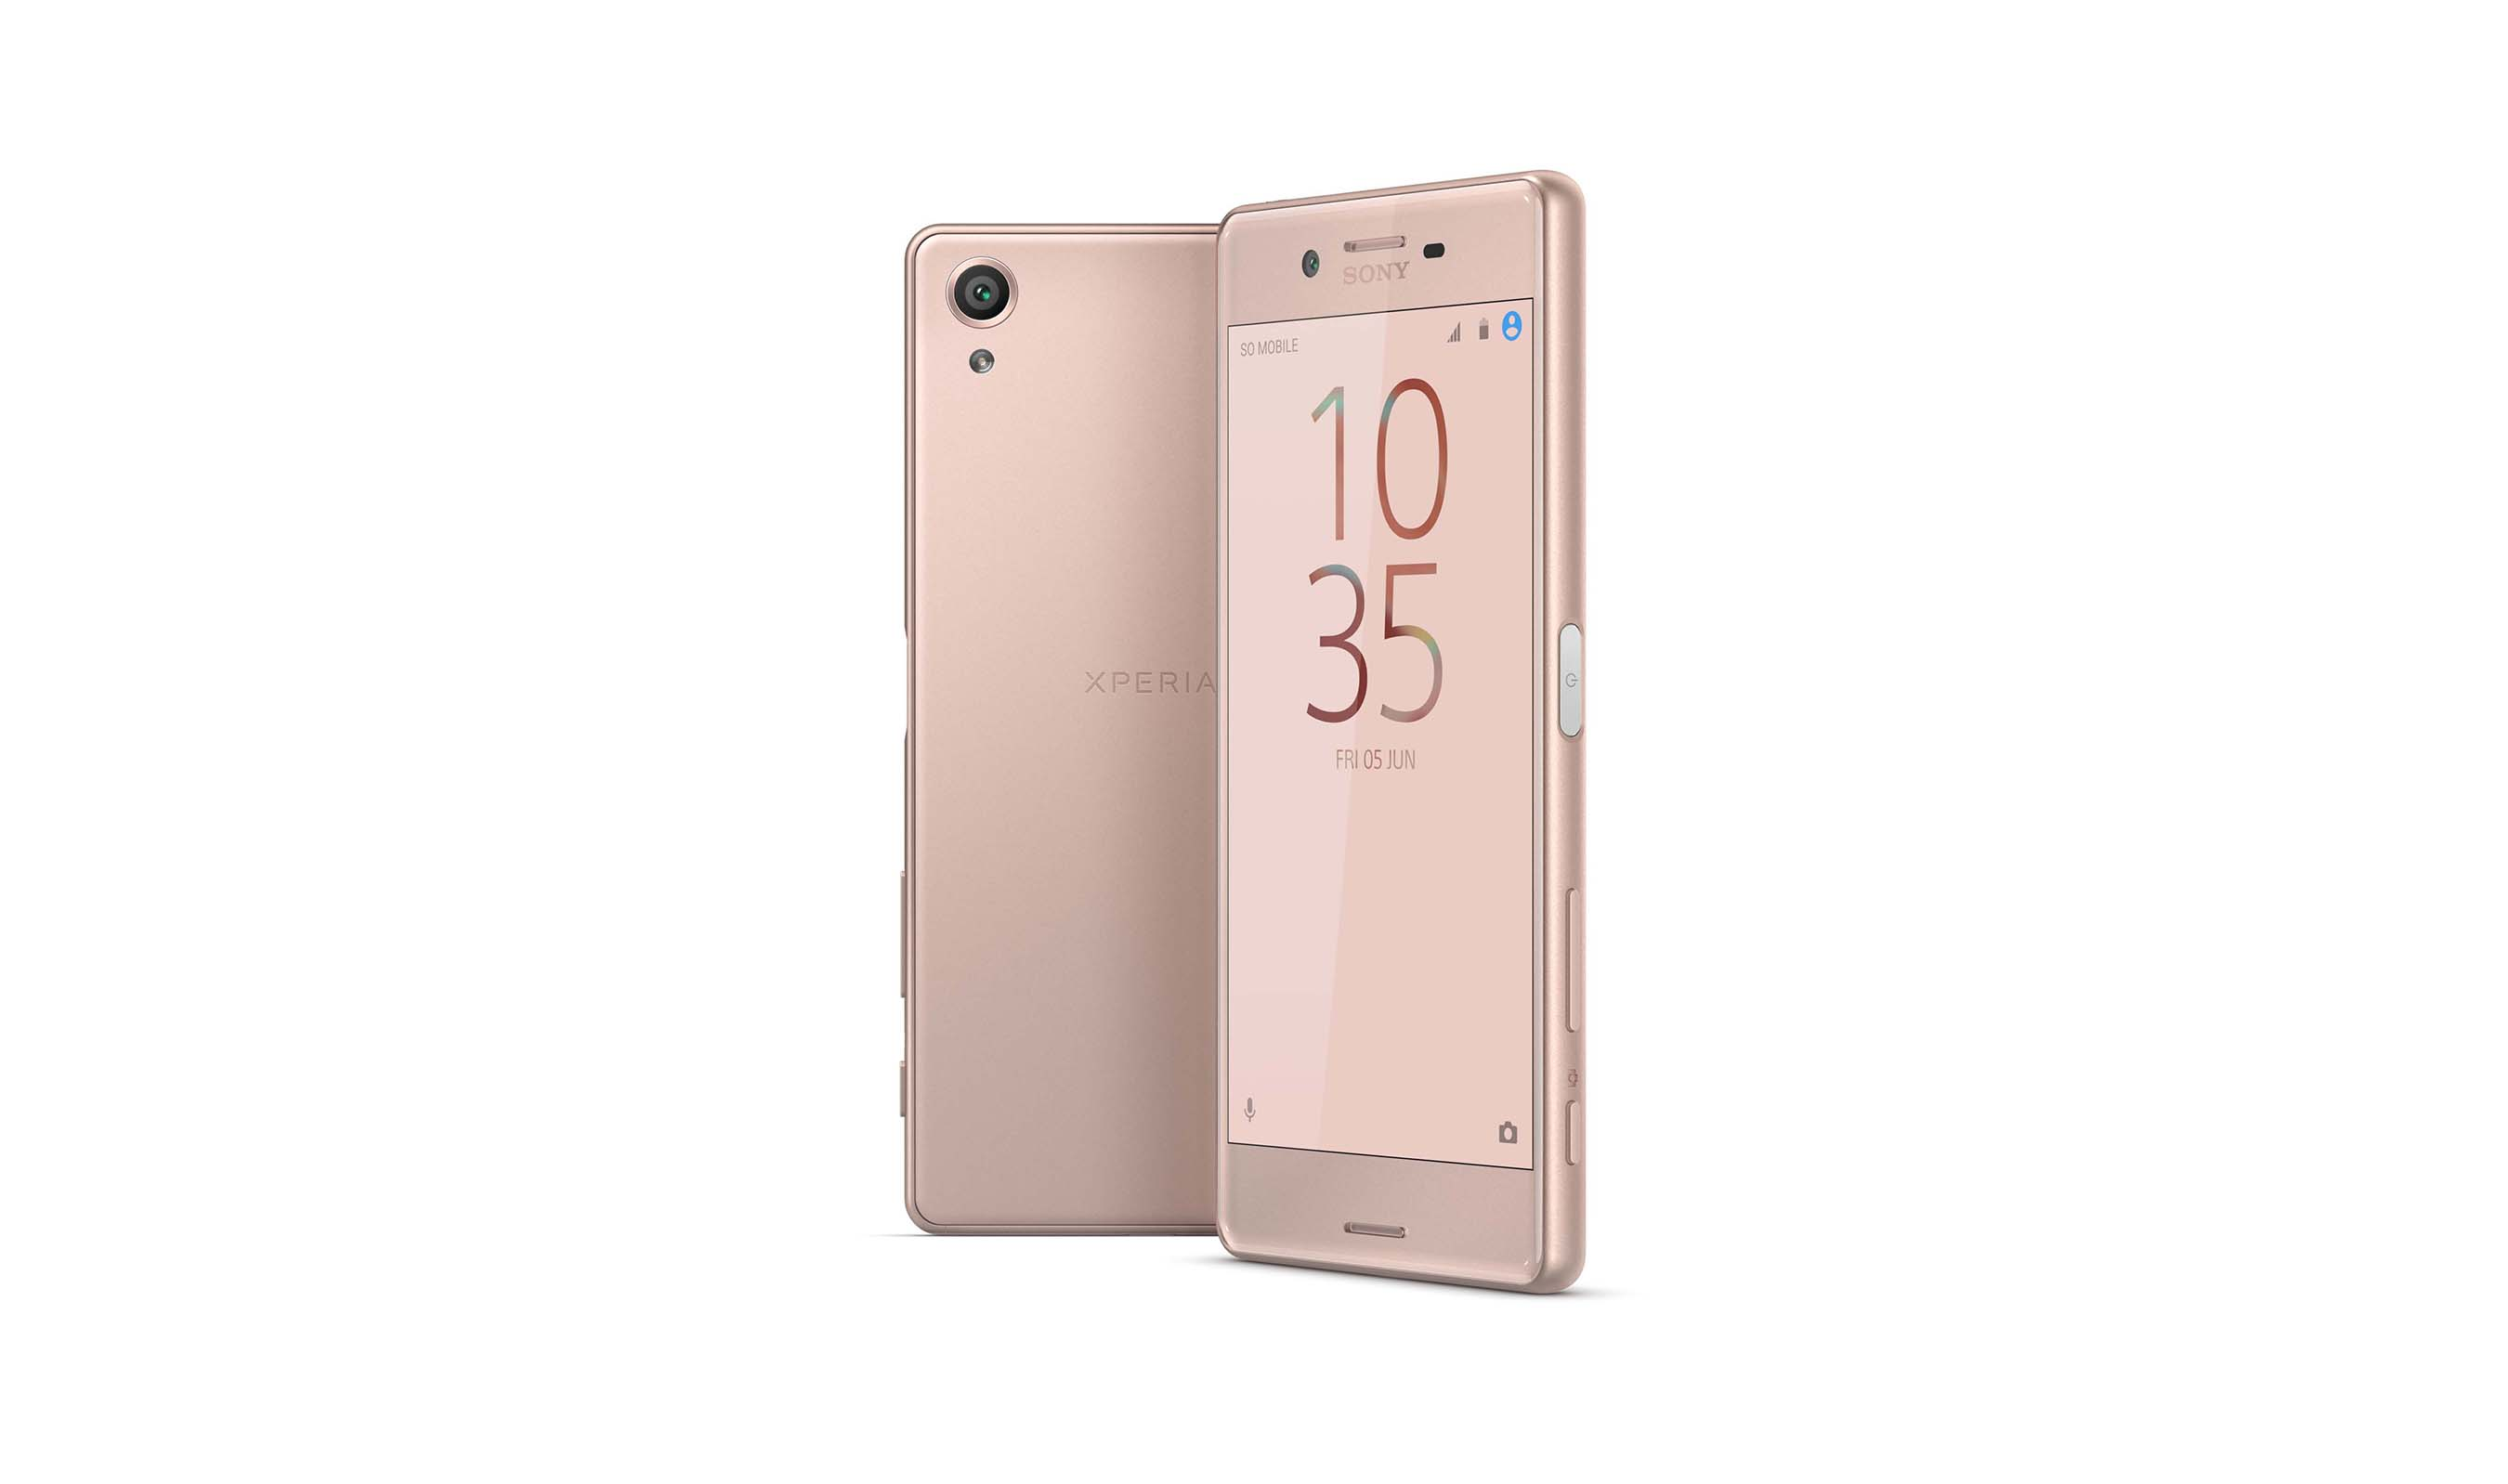 Xperia X is everything you need in a reliable, efficient and intelligent smartphone, with smart camera technologies and intelligent battery management using Qnovo Adaptive Charging.